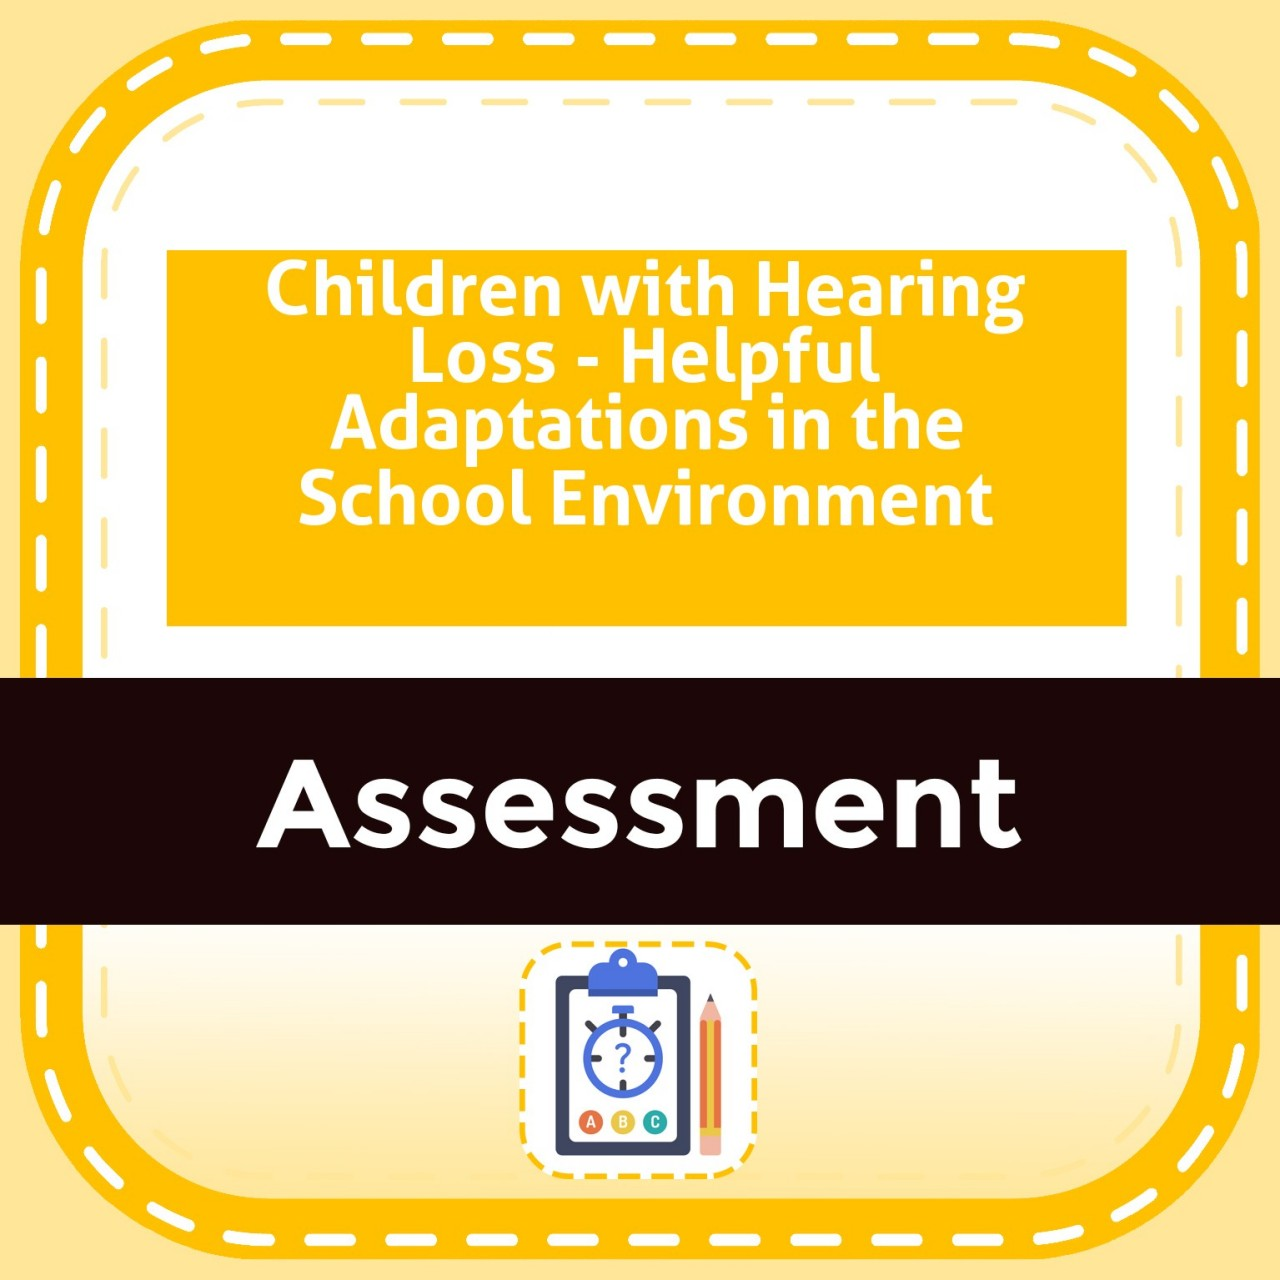 Children with Hearing Loss - Helpful Adaptations in the School Environment